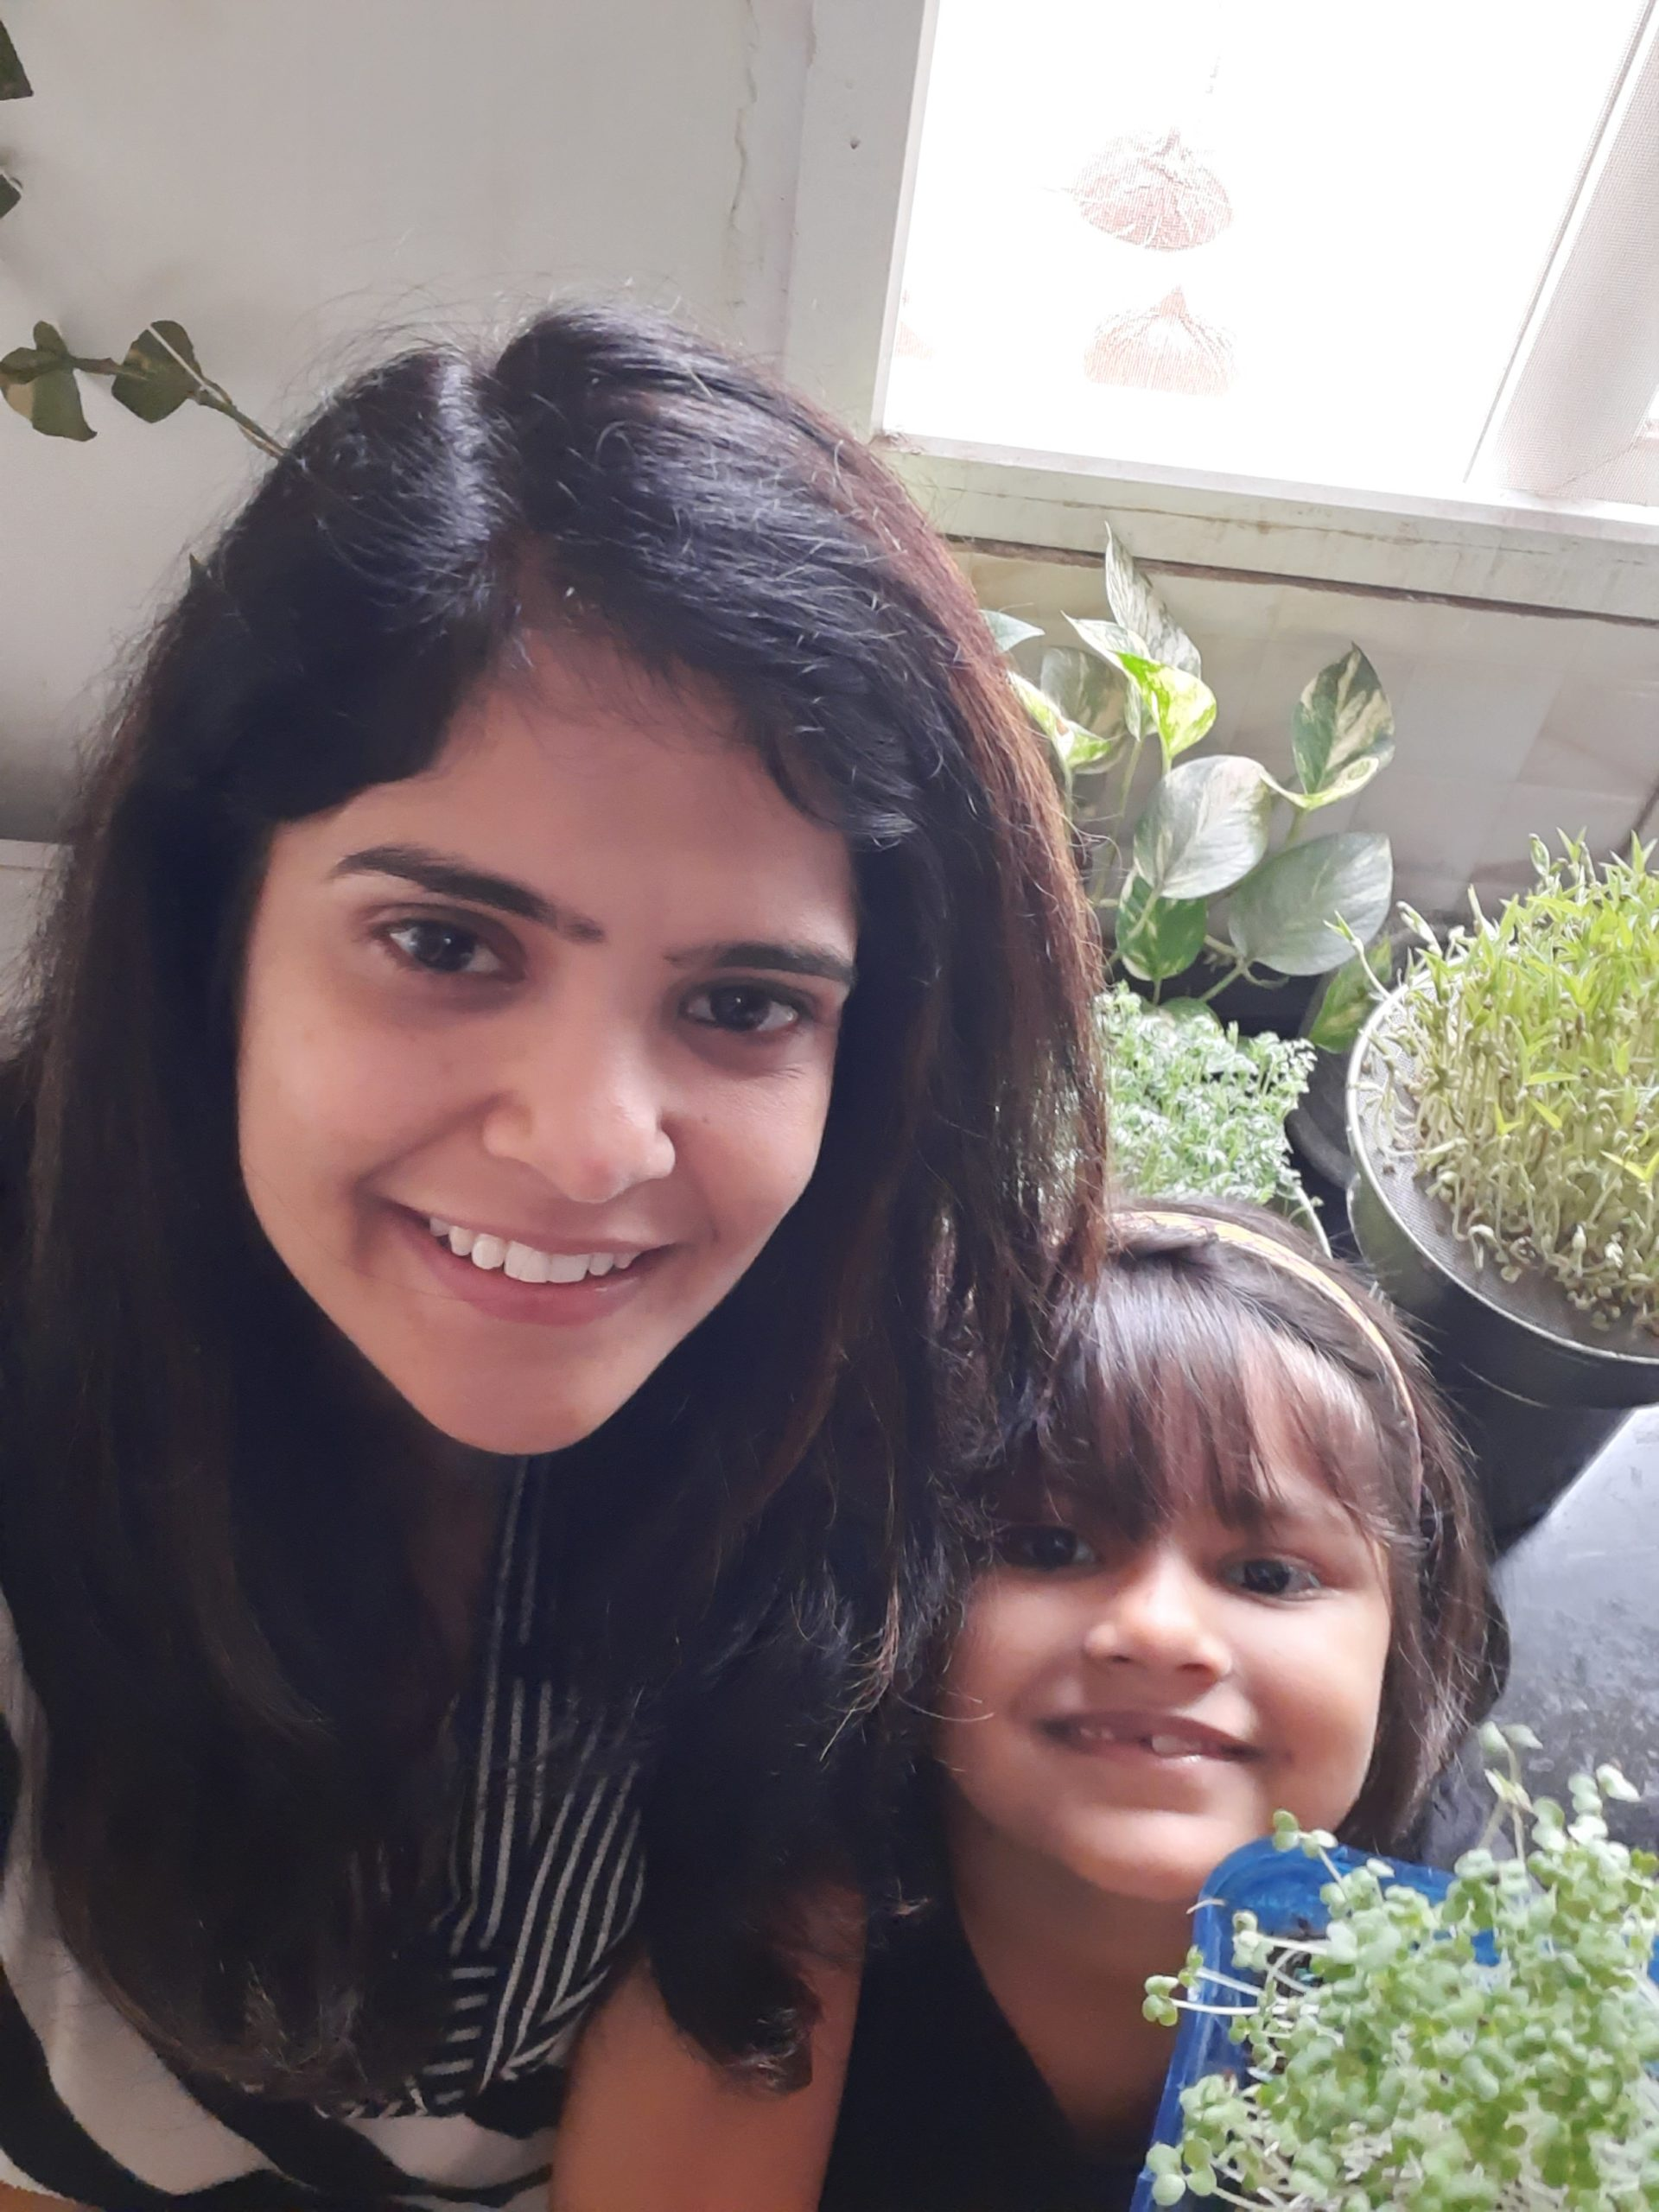 Rishita Sharma with her microgreens - Picture Courtesy - Rishita Sharma